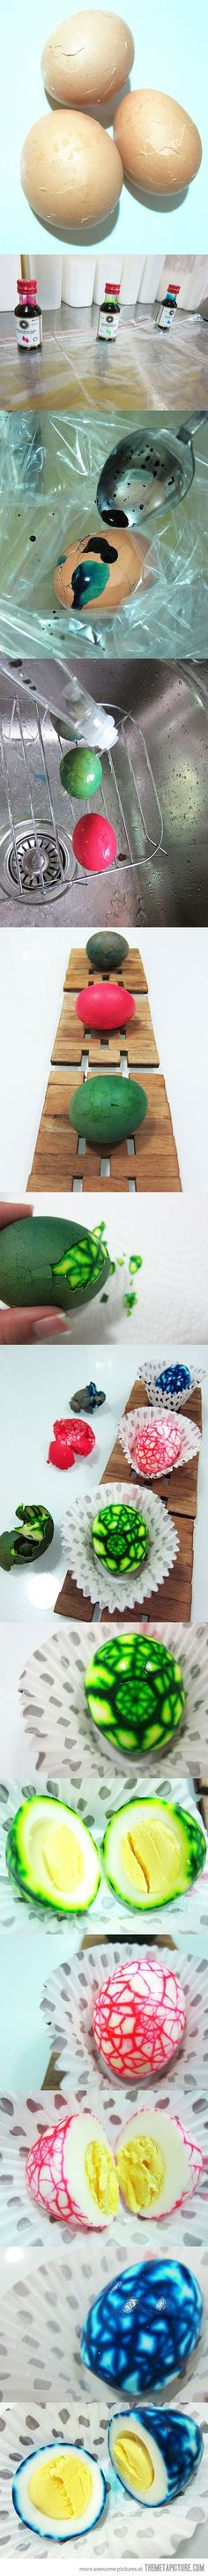 Vibrantly colored Easter eggs...